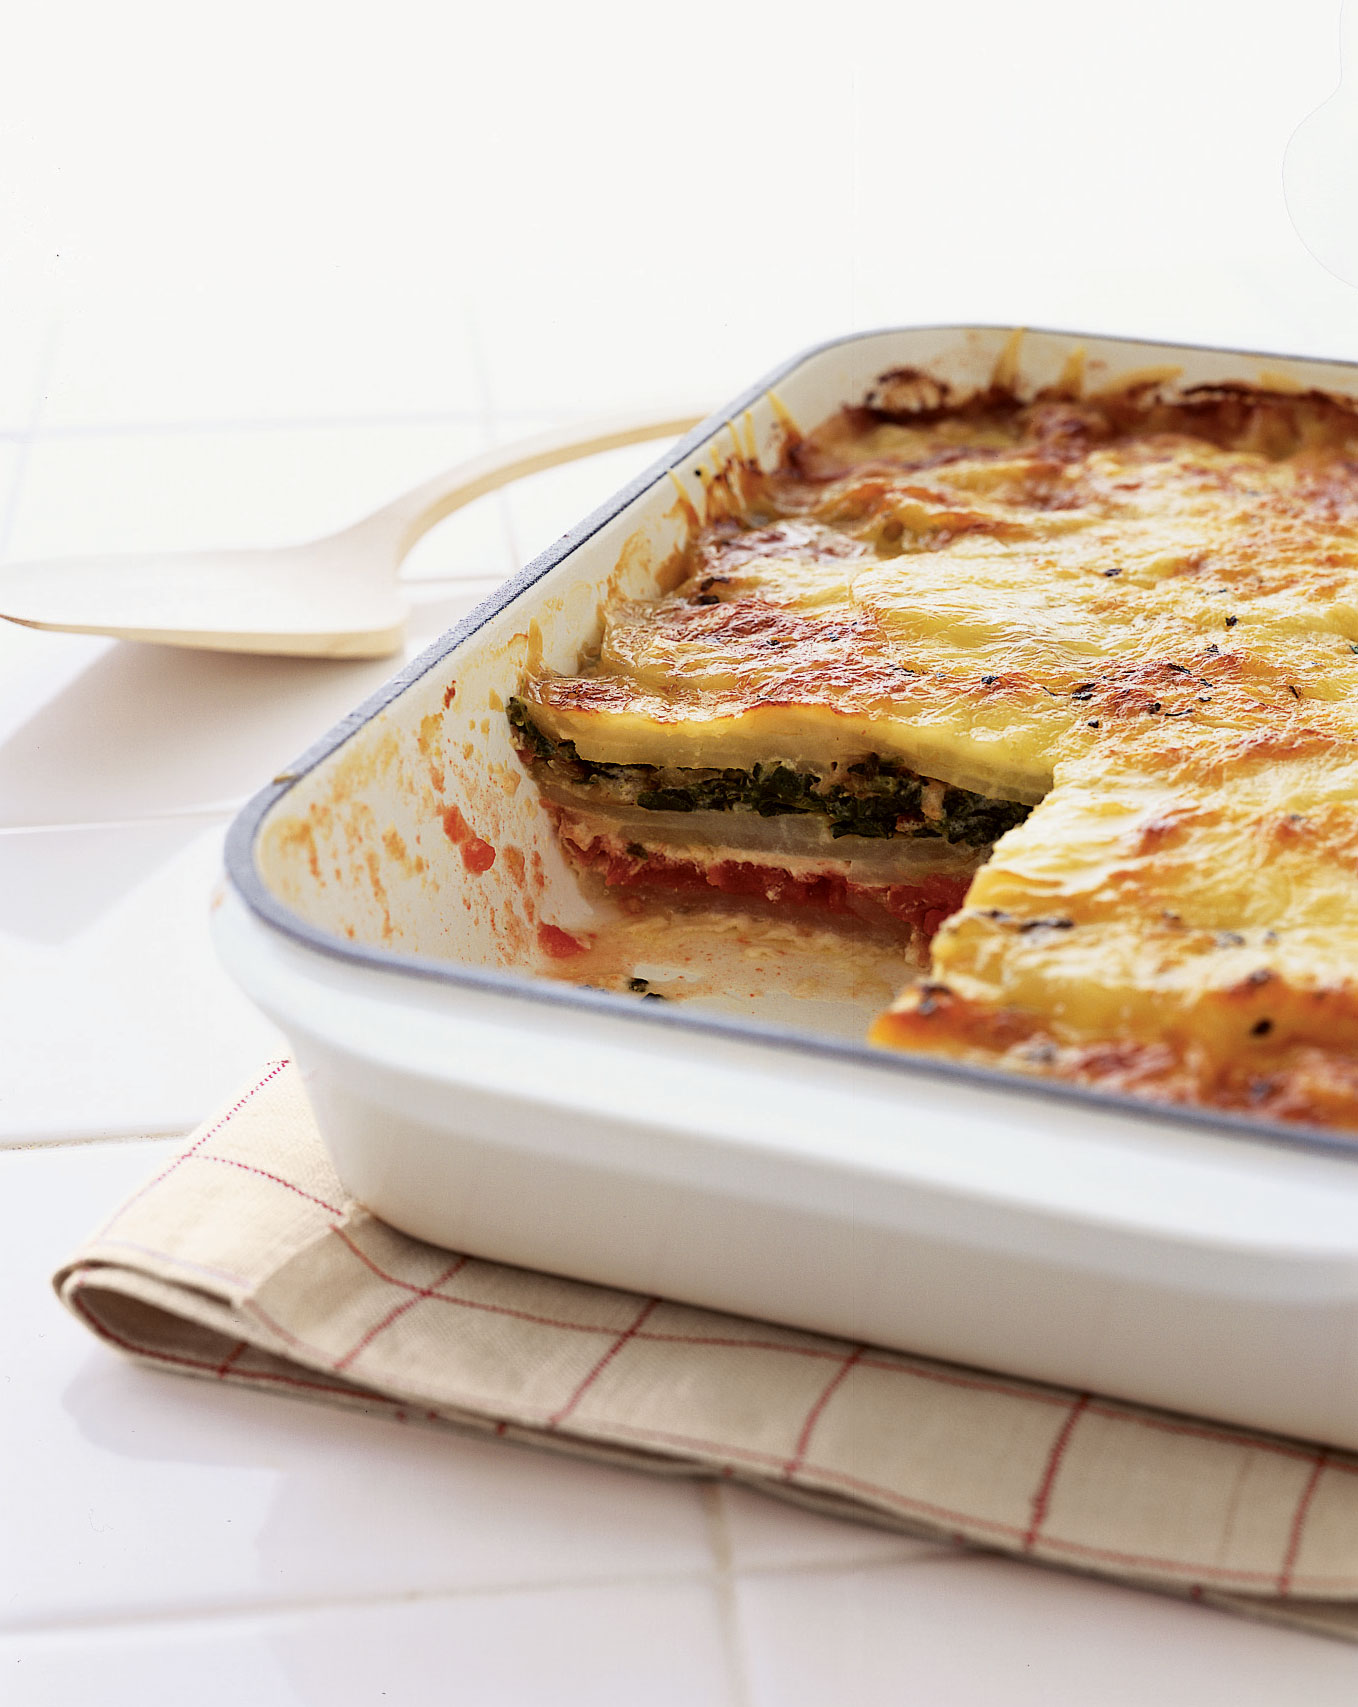 10 Easy Lasagna Recipes For The Ultimate One-Dish Meal